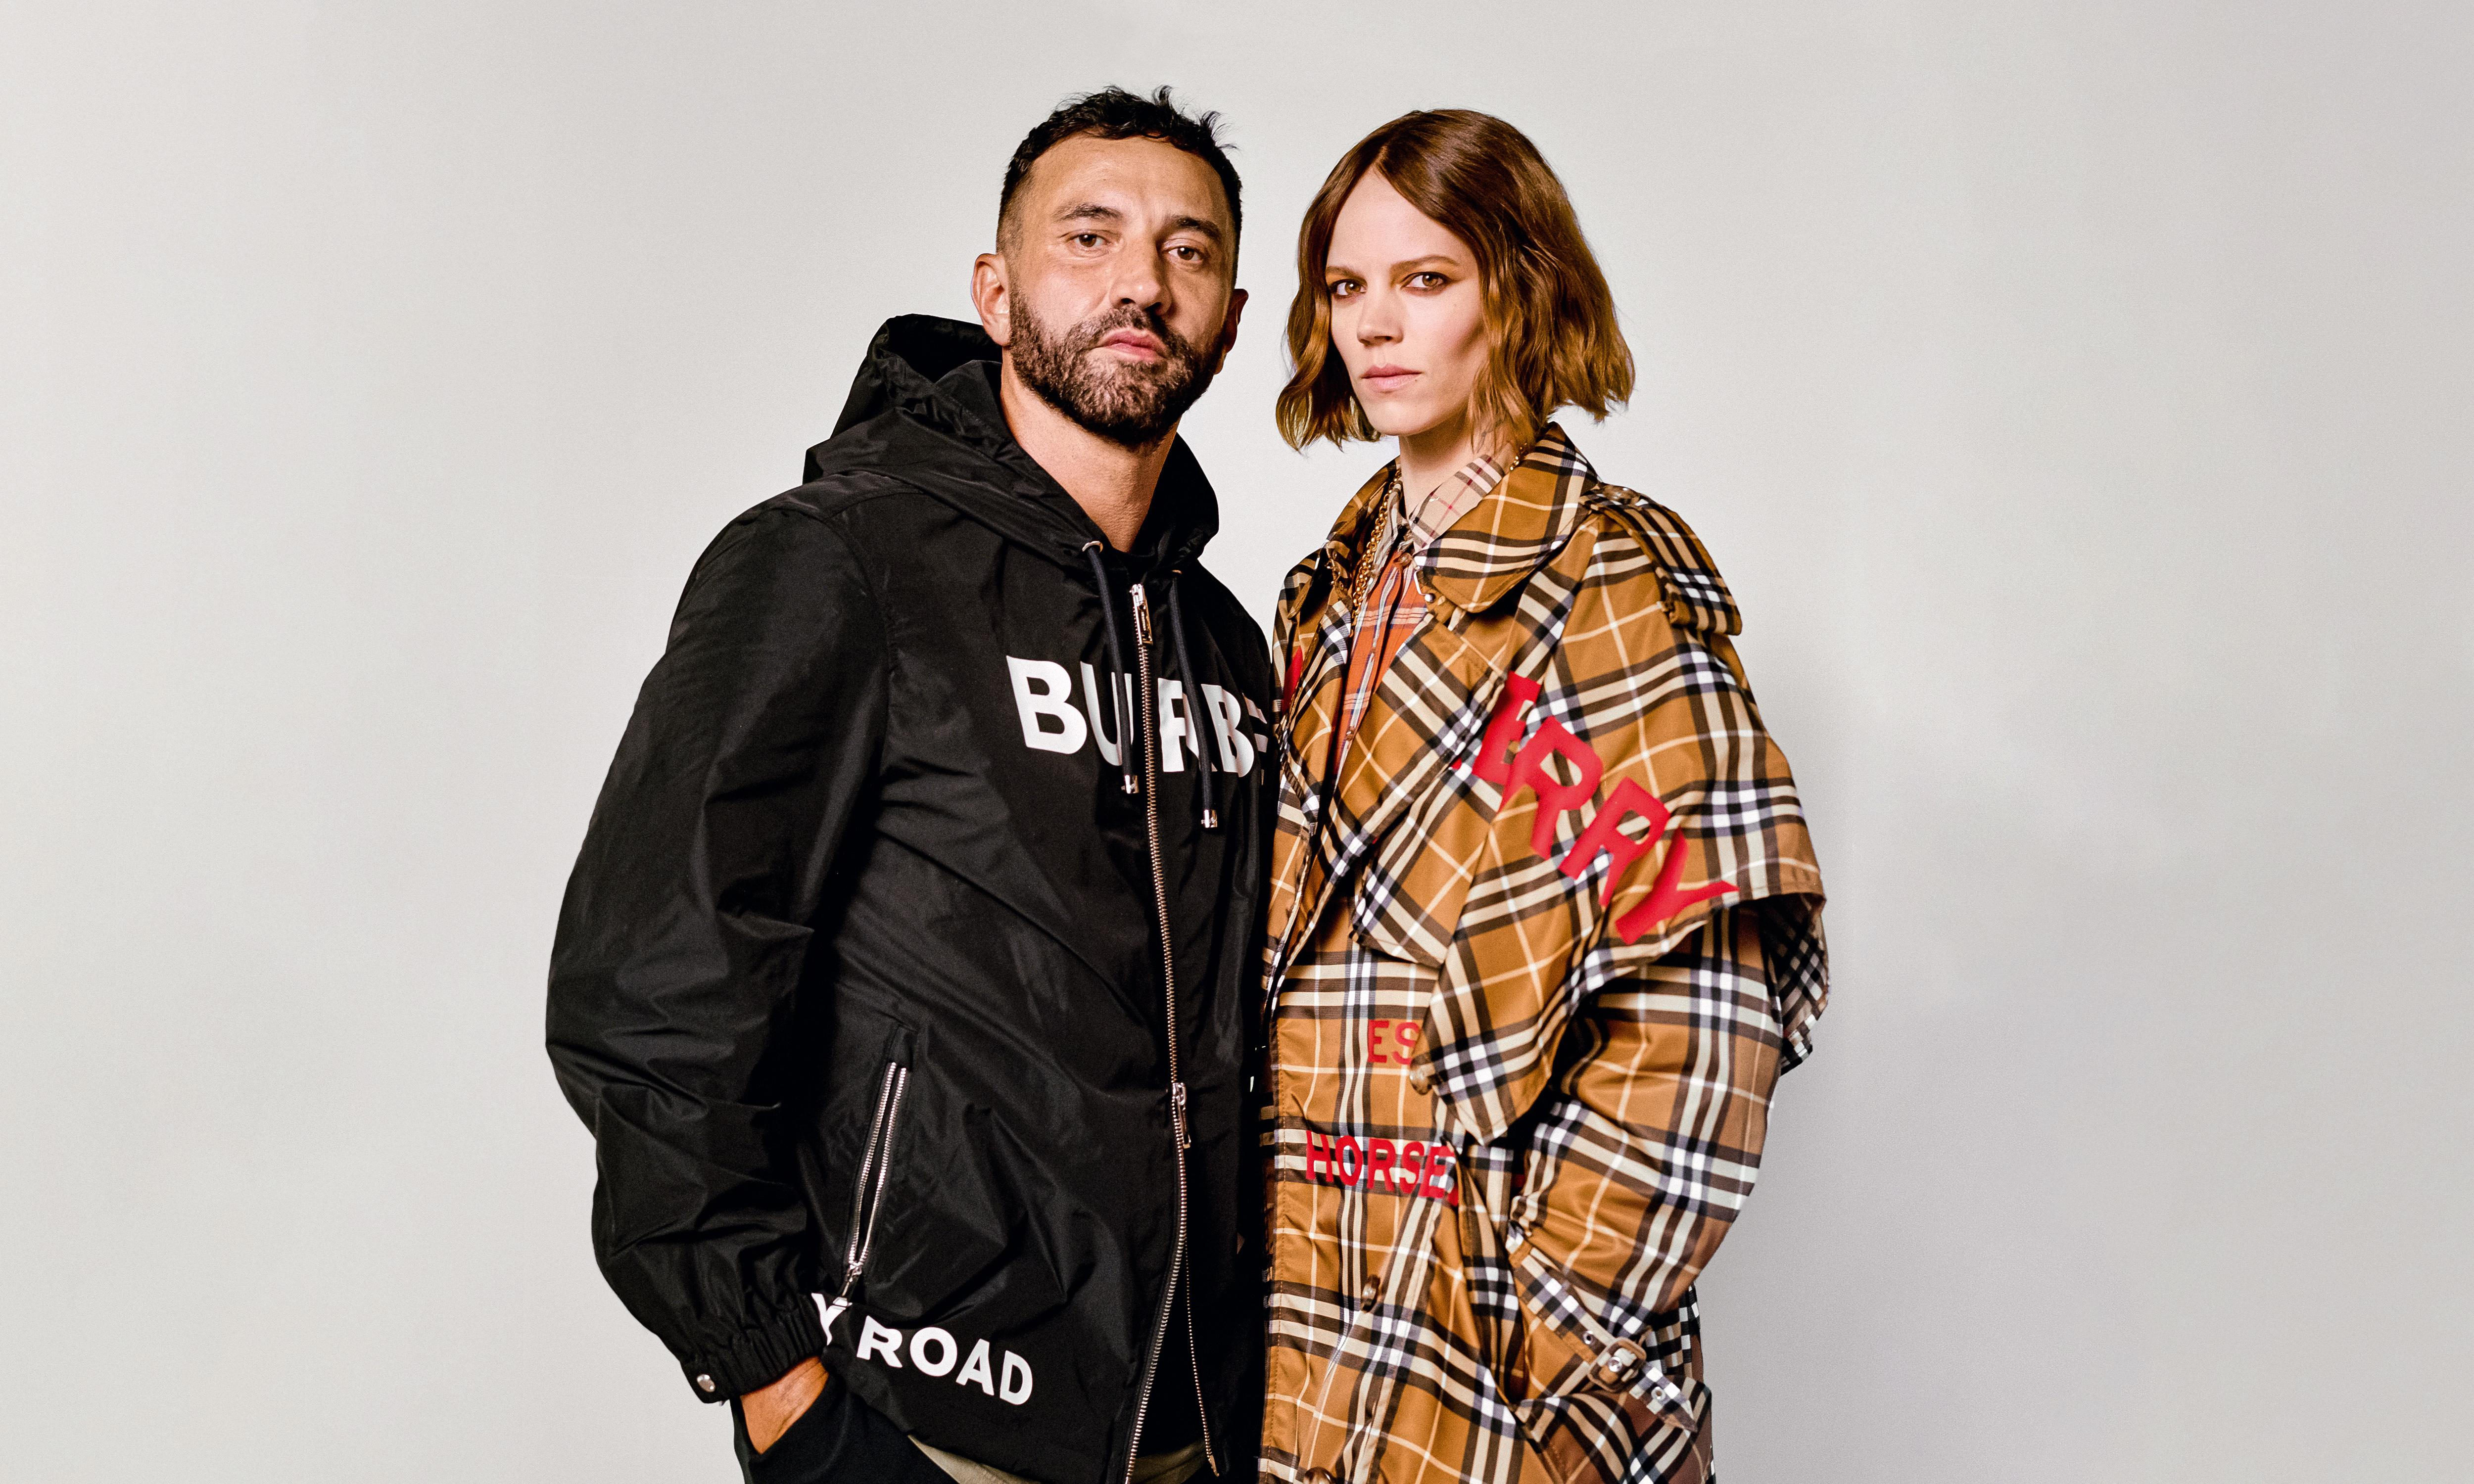 Checking in: Riccardo Tisci on his new era at Burberry